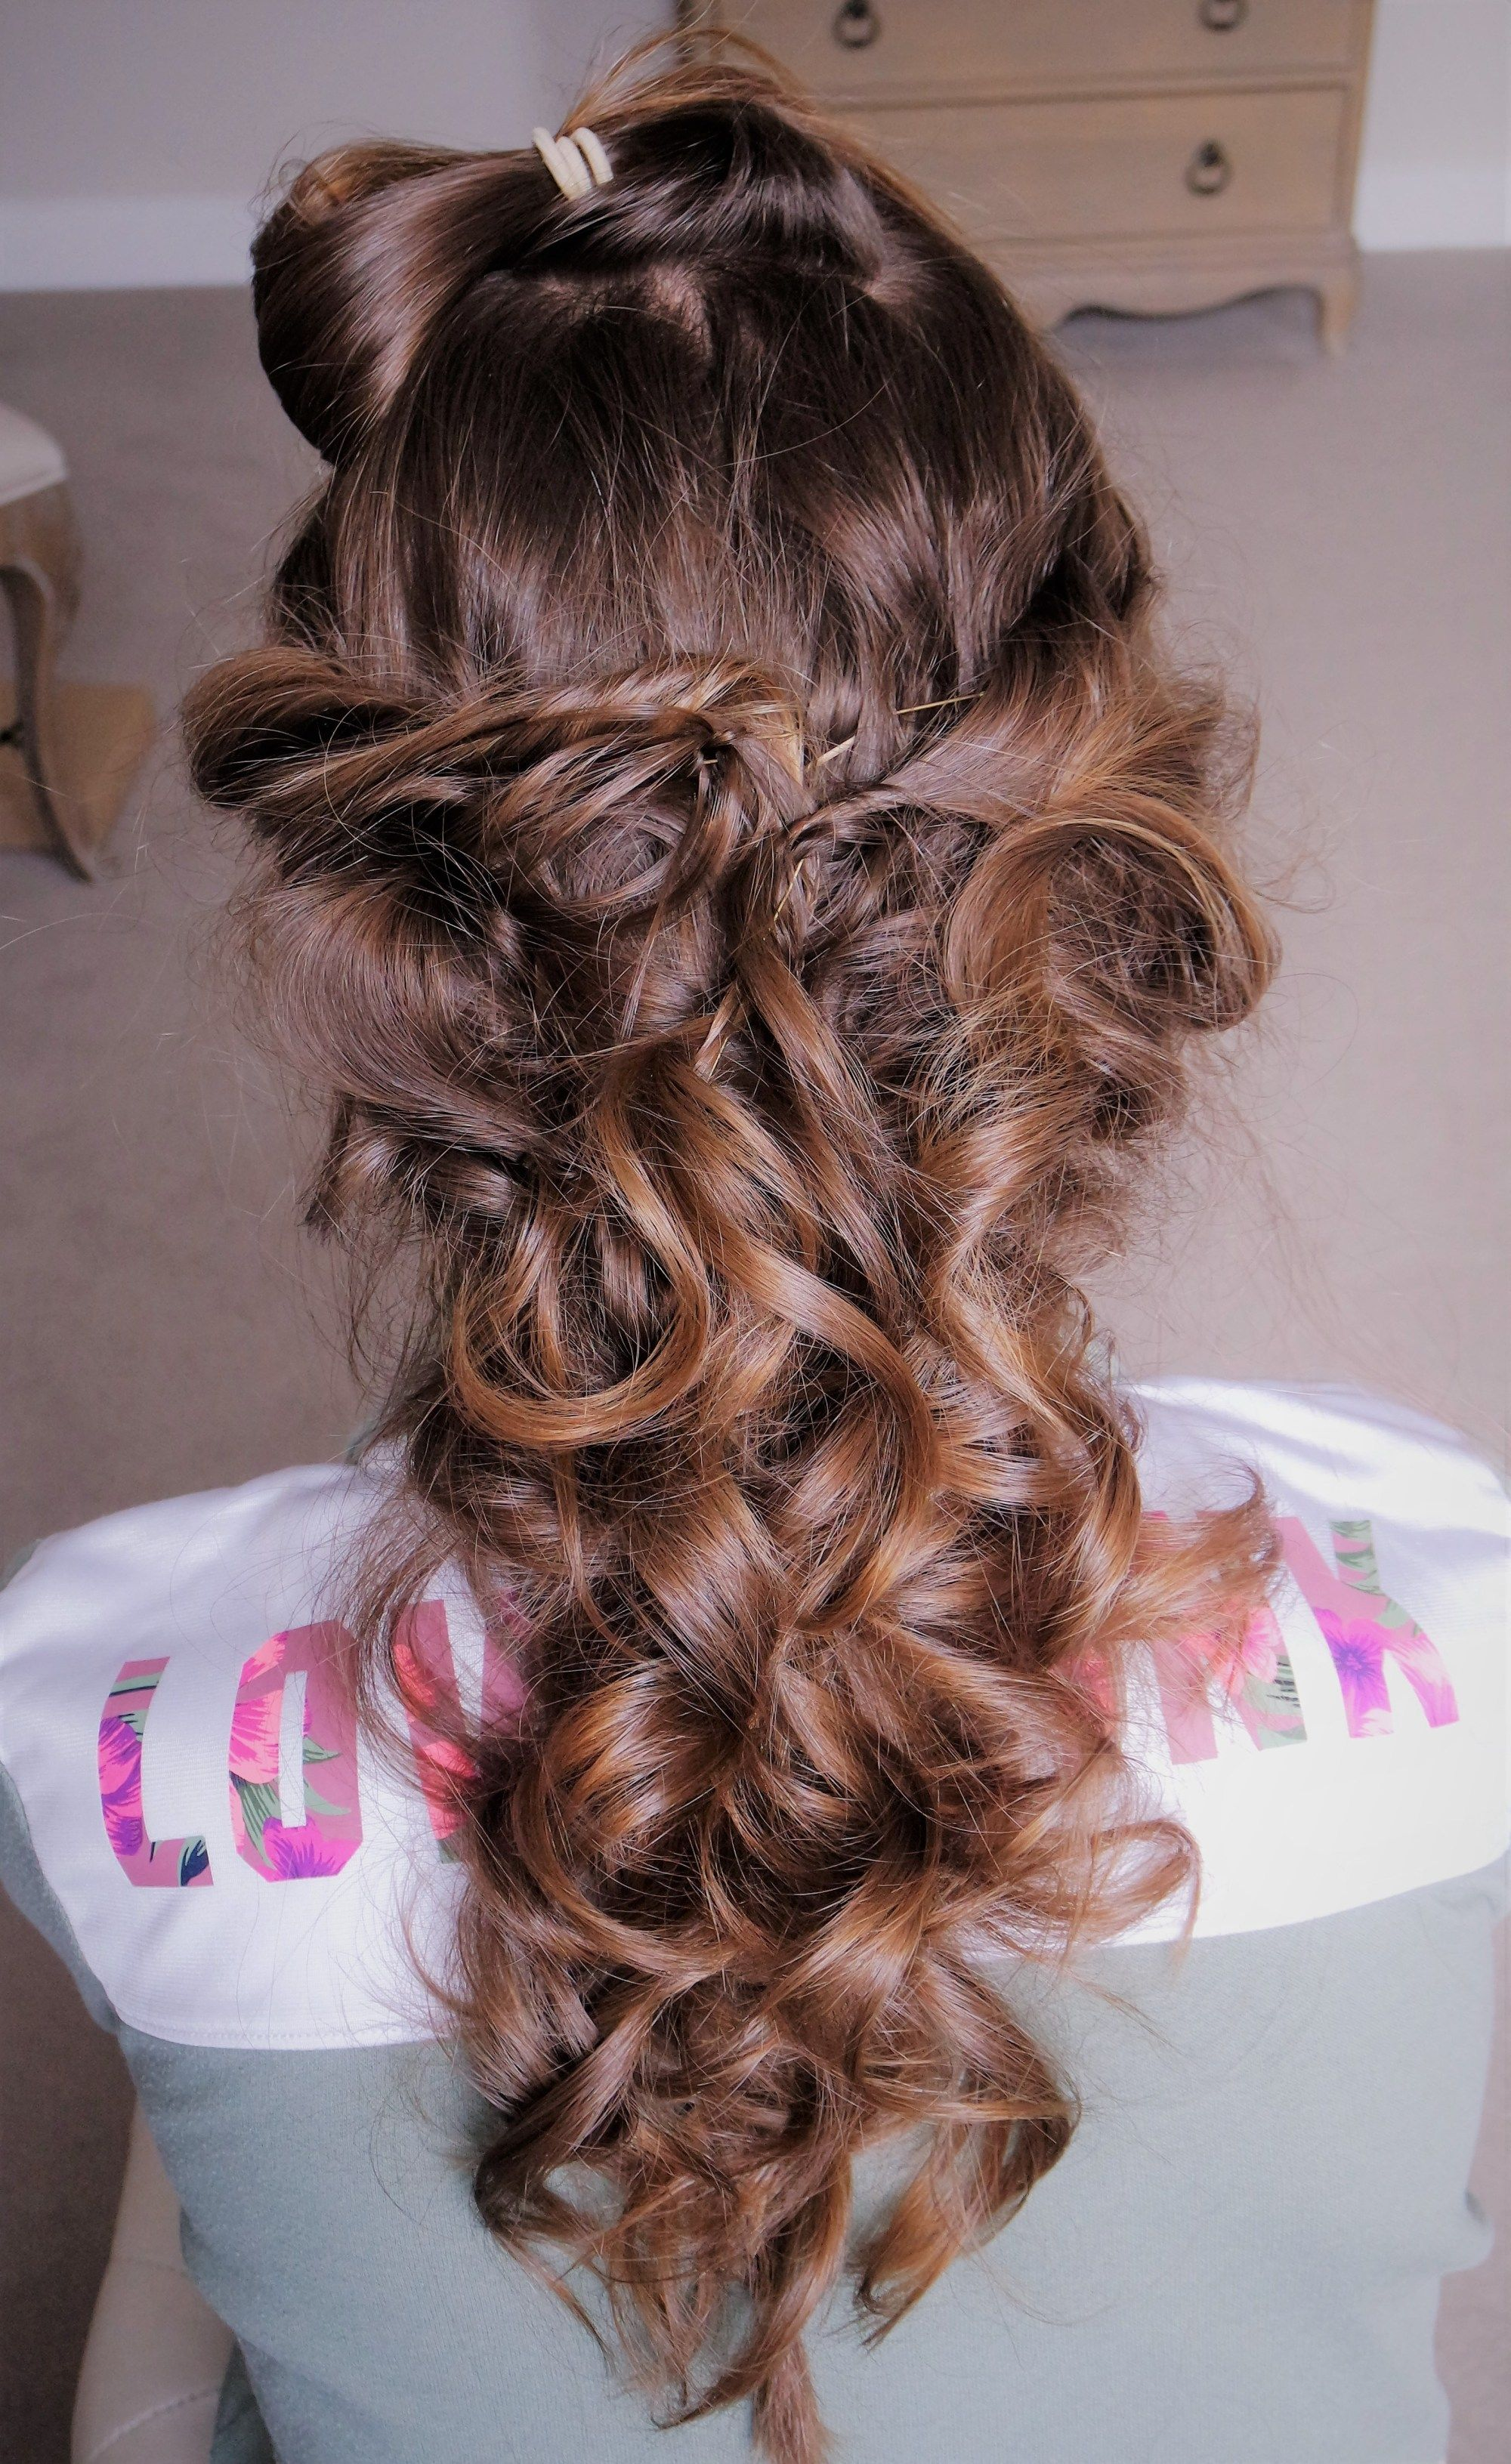 44++ Updo hairstyles with clip in extensions inspirations